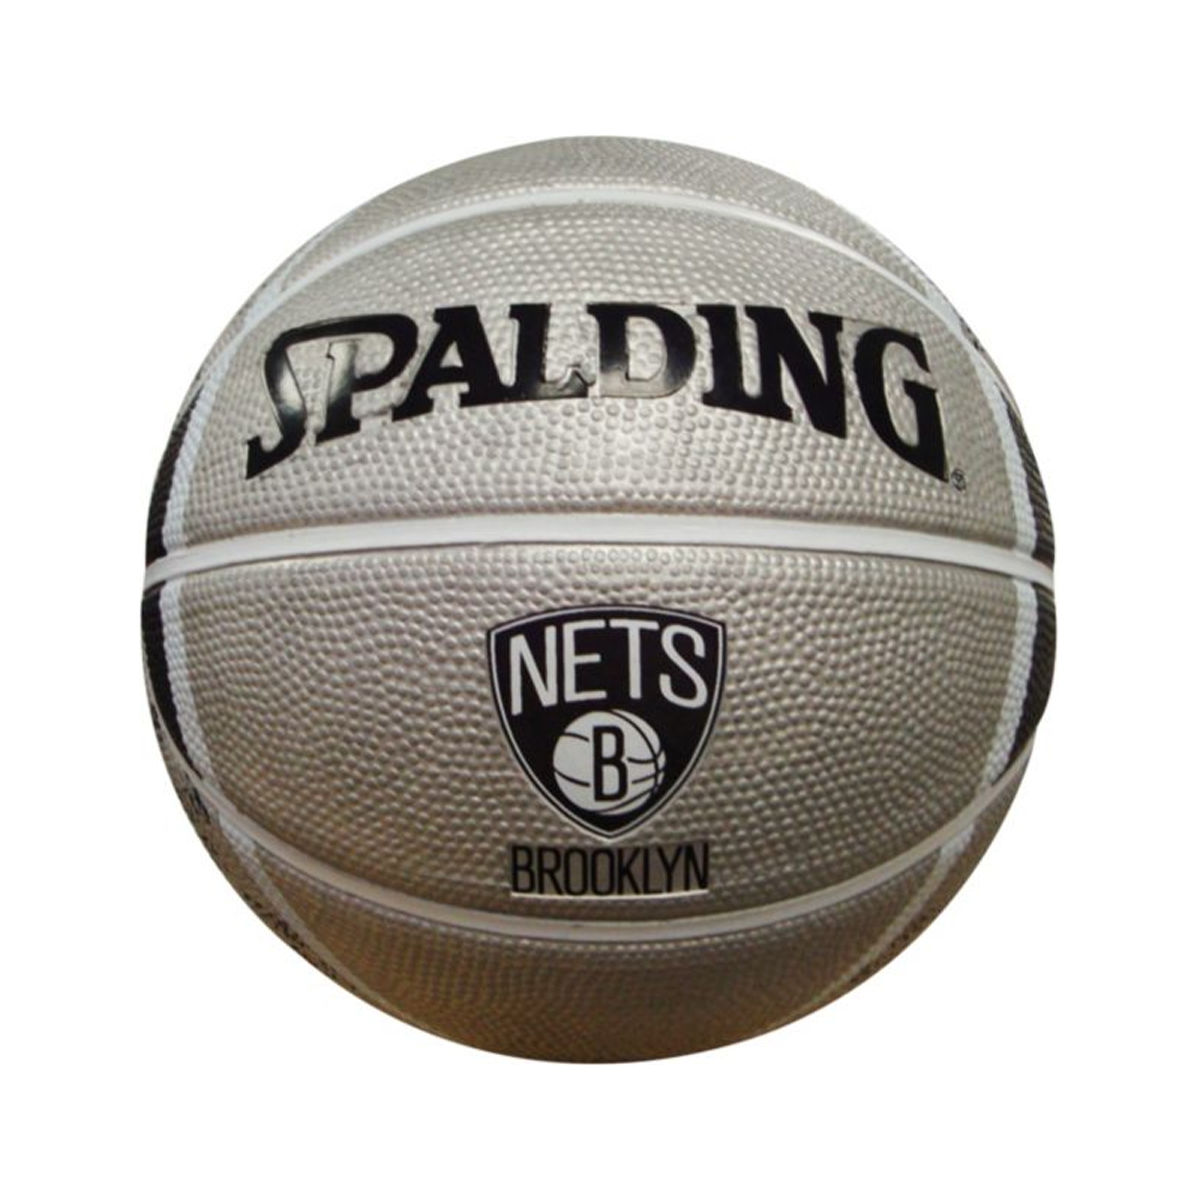 Brooklyn Nets 2018 Mini Basketball